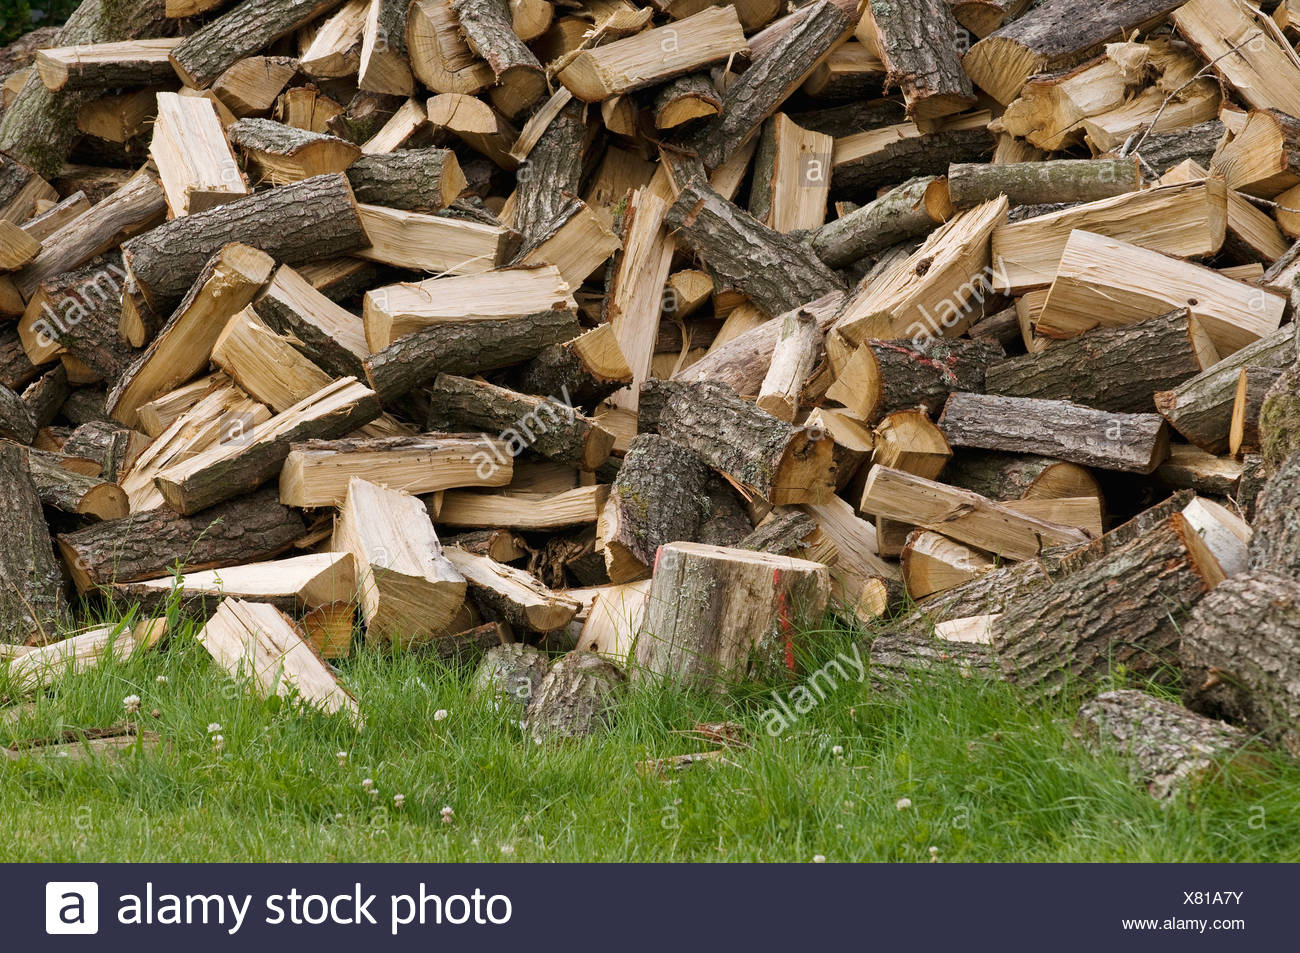 Chopped firewood, piled up logs on a lawn - Stock Image